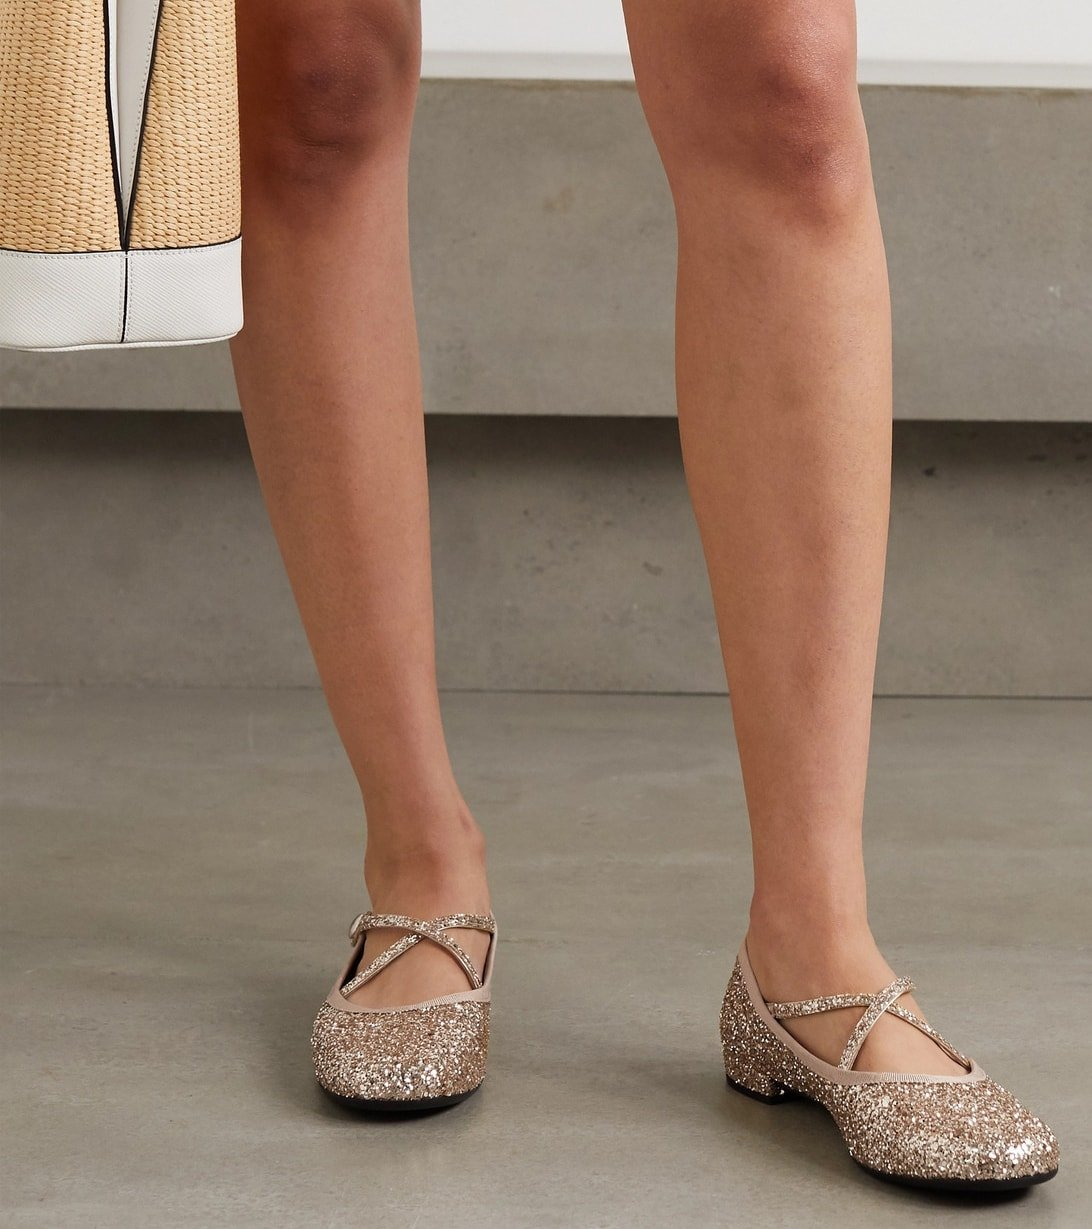 Made in Italy from glittered leather, these leather ballet flats from Miu Miu have elegant crossover straps and small stacked heels